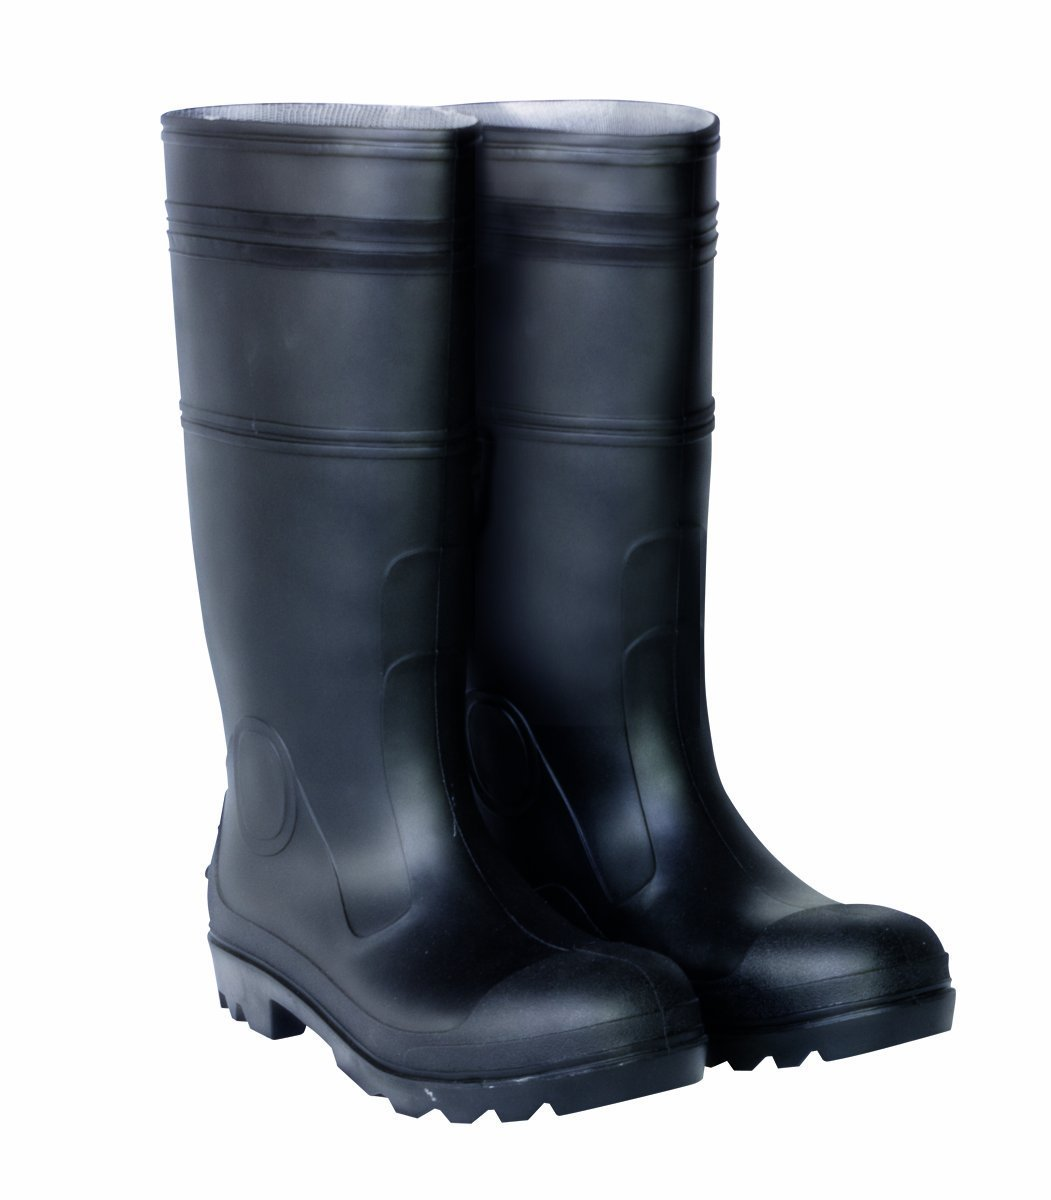 CLC Custom Leathercraft Rain Wear R23012 Over The Sock Black PVC Men's Rain Boot, Size 12